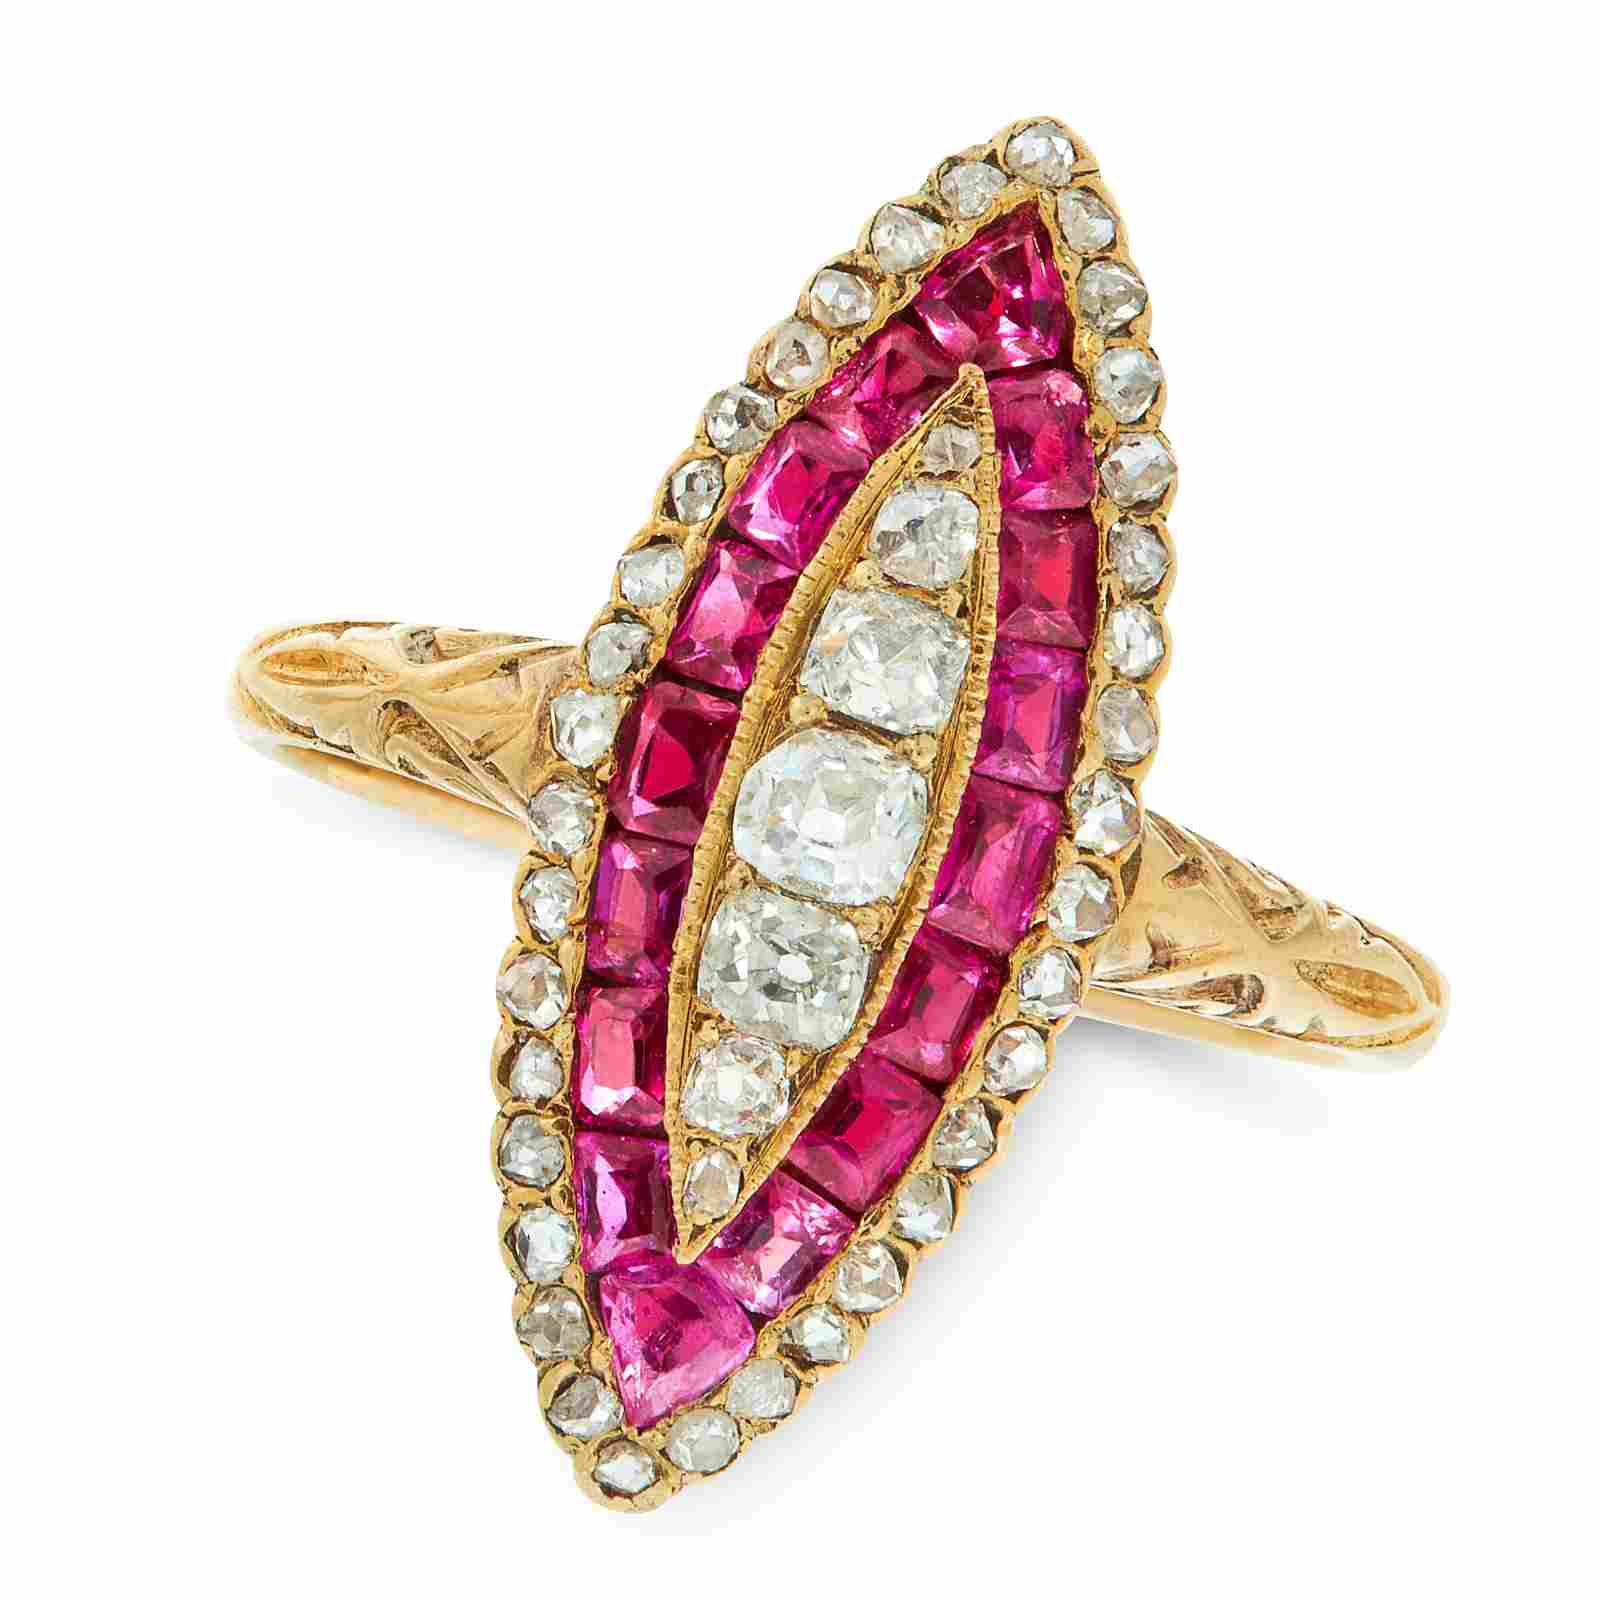 A RUBY AND DIAMOND DRESS RING in 18ct yellow gold, the